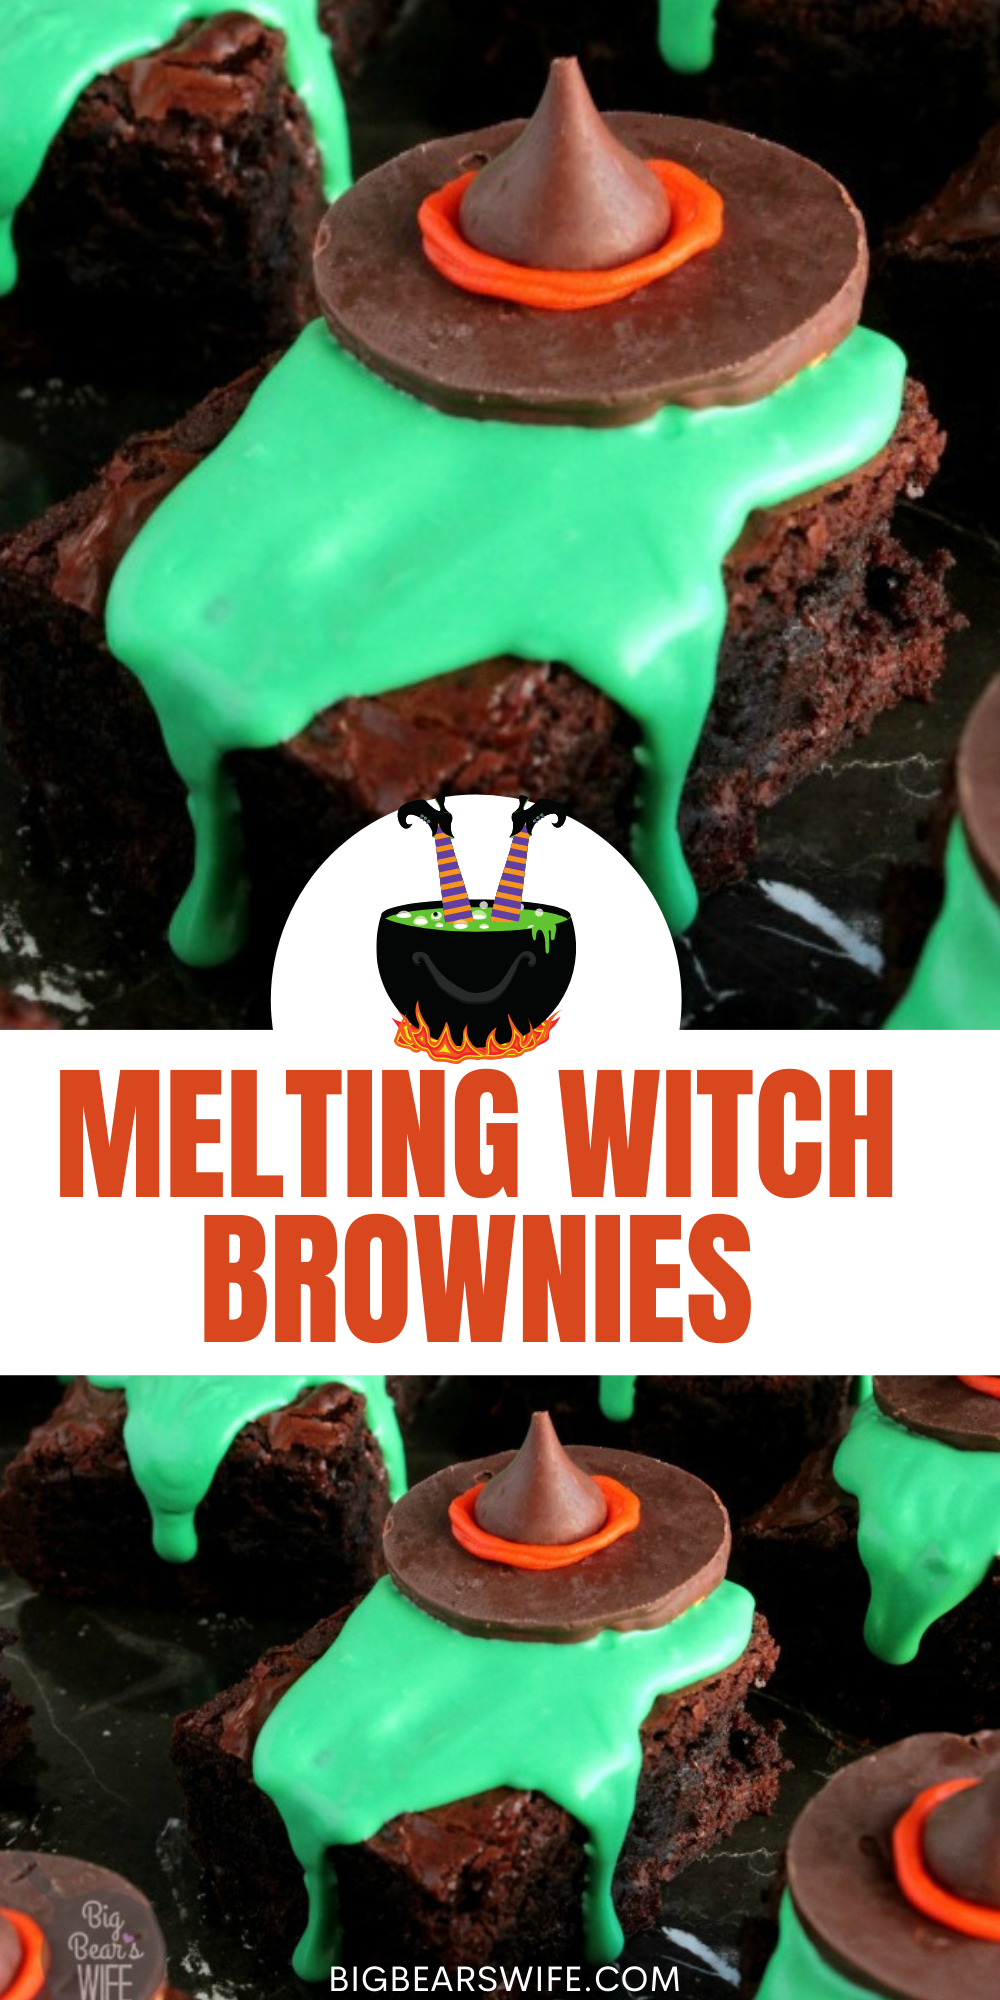 These Melting Witch Brownies are giving us serious Wizard of Oz vibes by melting wicked witches over these brownies. These are fantastic for Halloween! via @bigbearswife